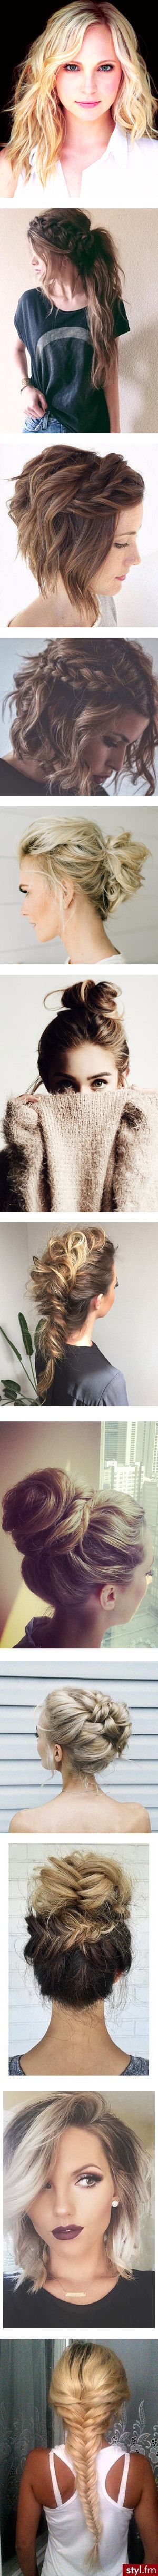 Hair Styles I love by annalynn2424 on Polyvore featuring hair, candice accola, people, hairstyles, cabelo, beauty, beauty products, haircare, hair styling tools and fine hair care